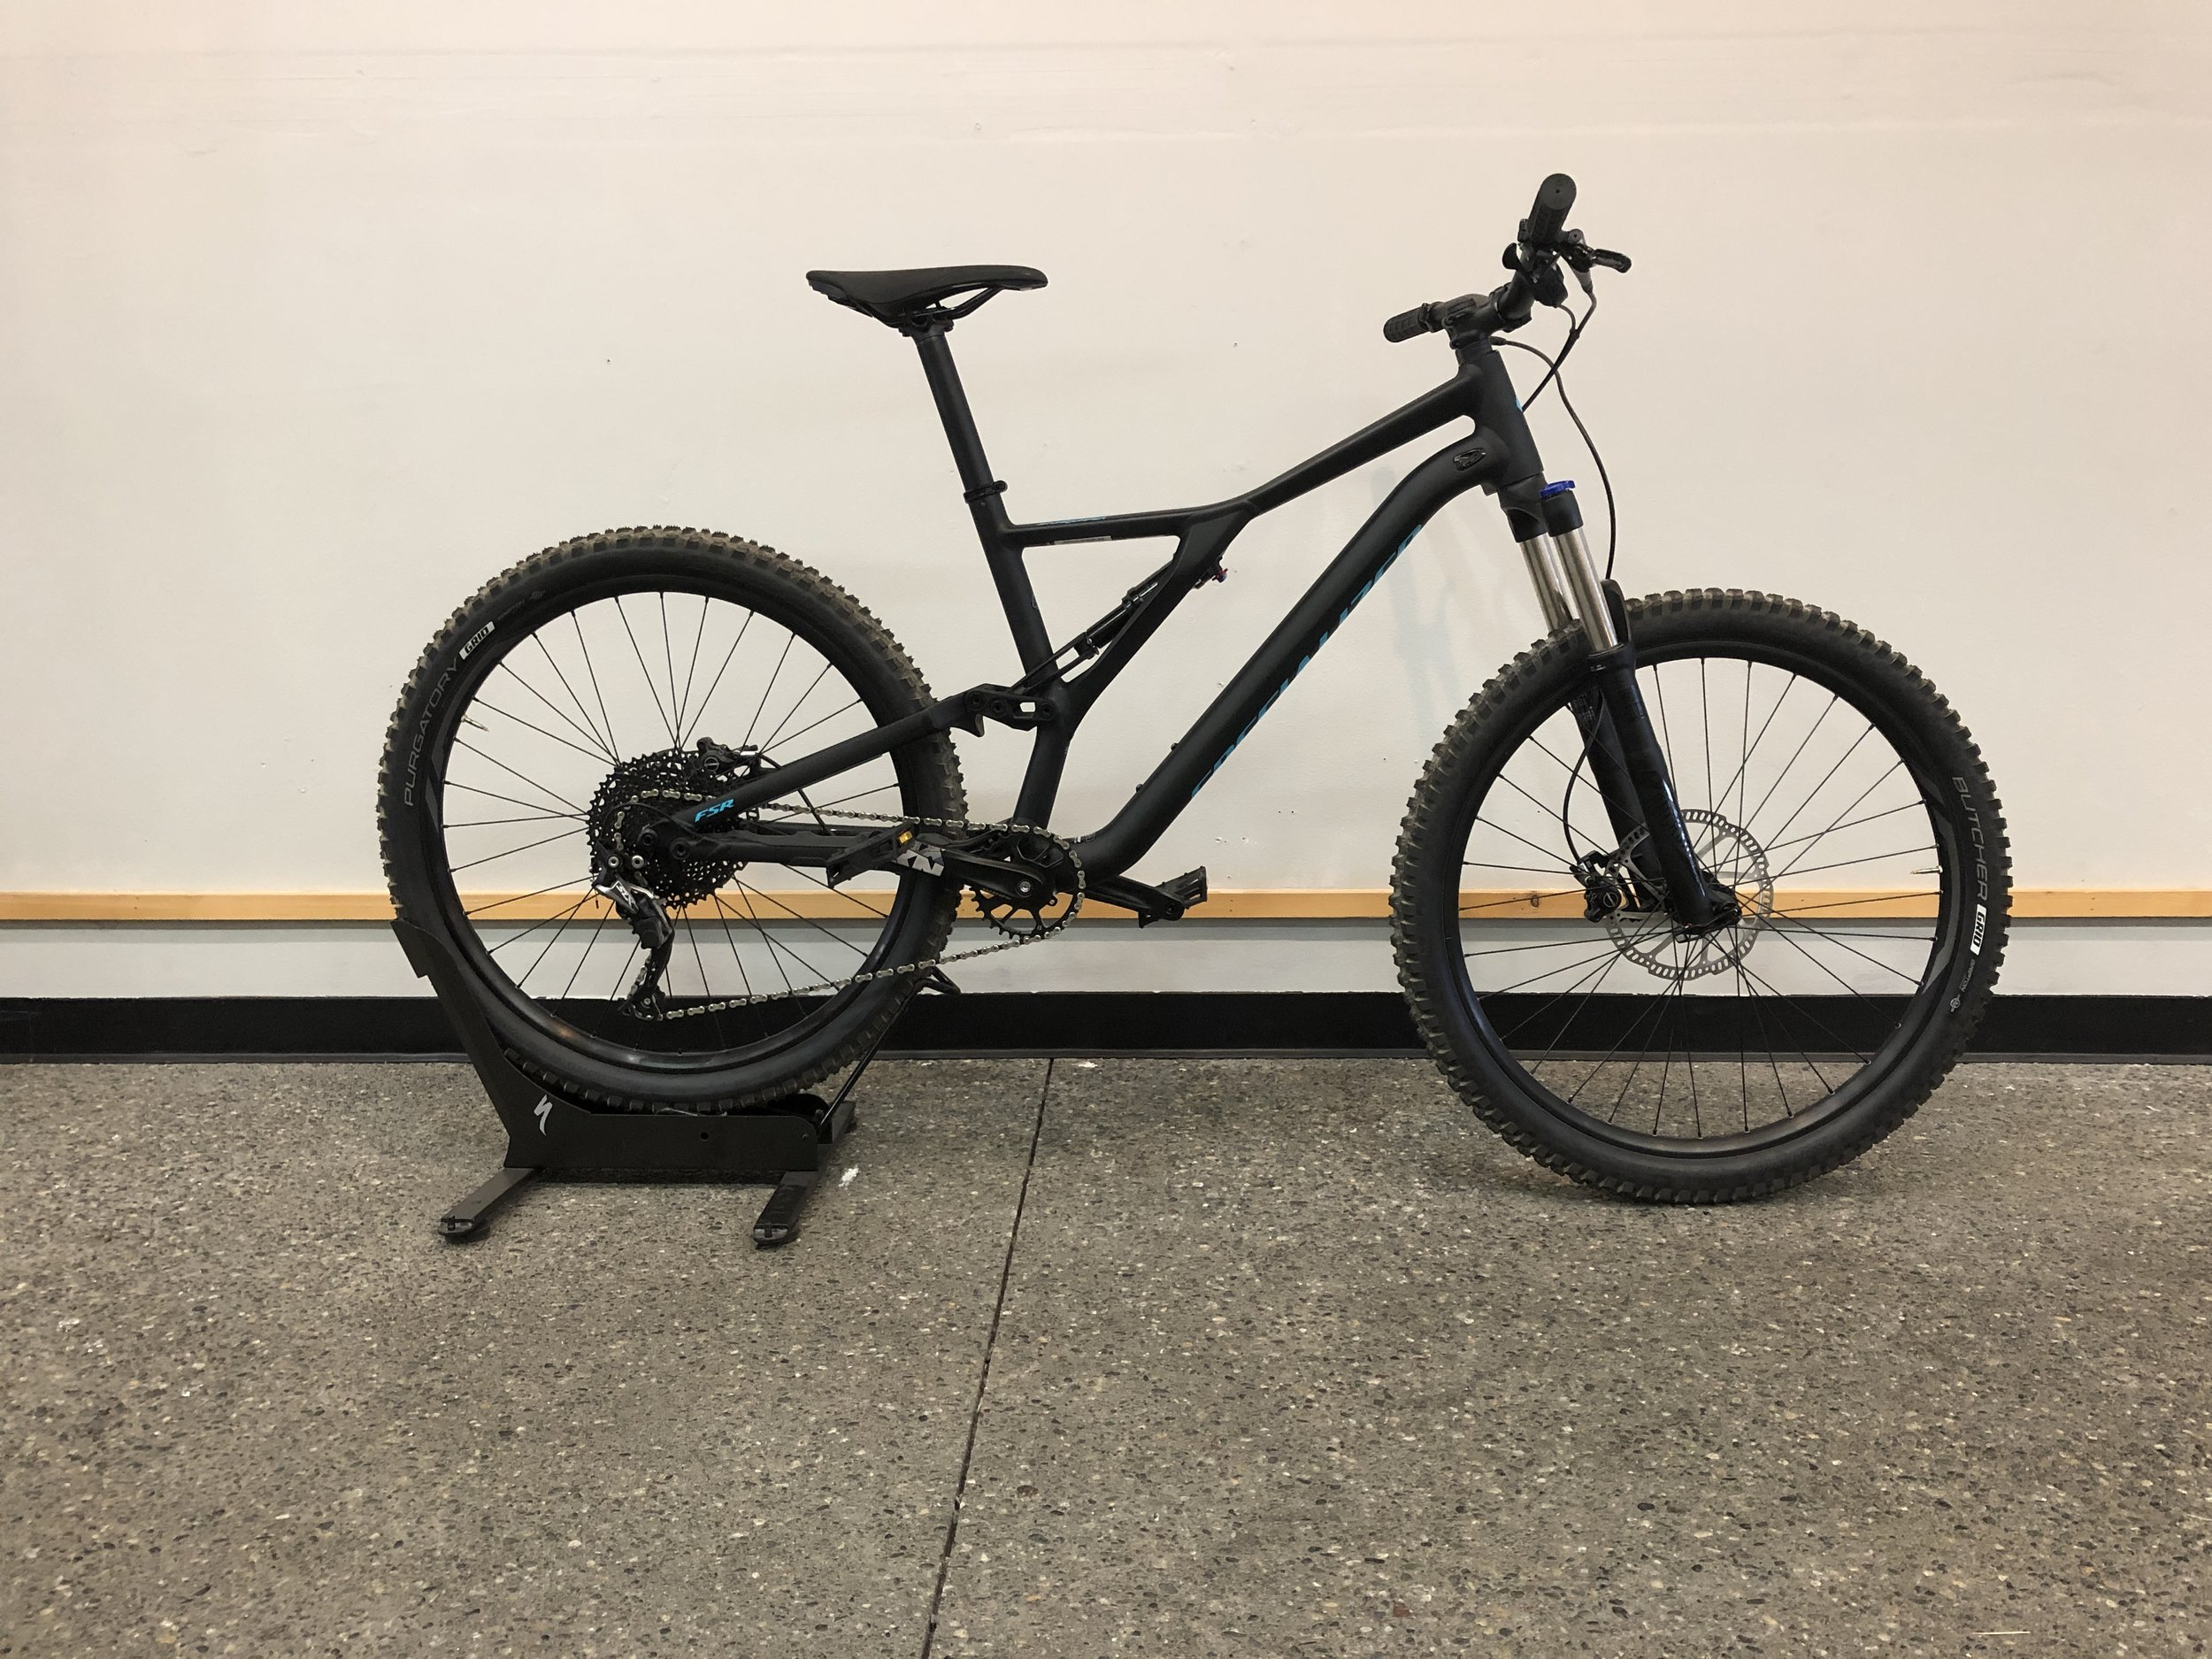 2019 Specialized Stumpjumper ST 27.5 $1850 - Sizes Available : Medium, Large, XL